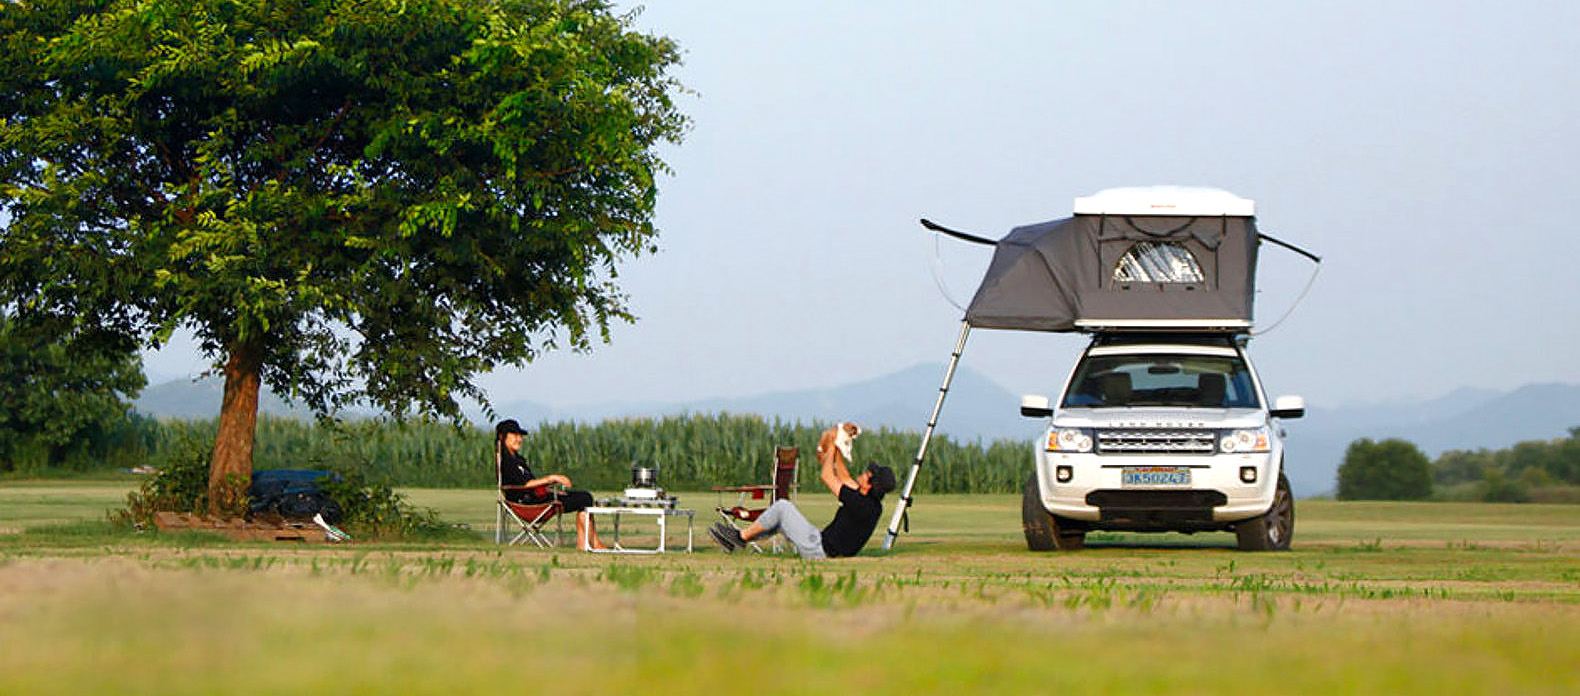 iKamper's Hardtop One is like a pop-up trailer for your car's rooftop